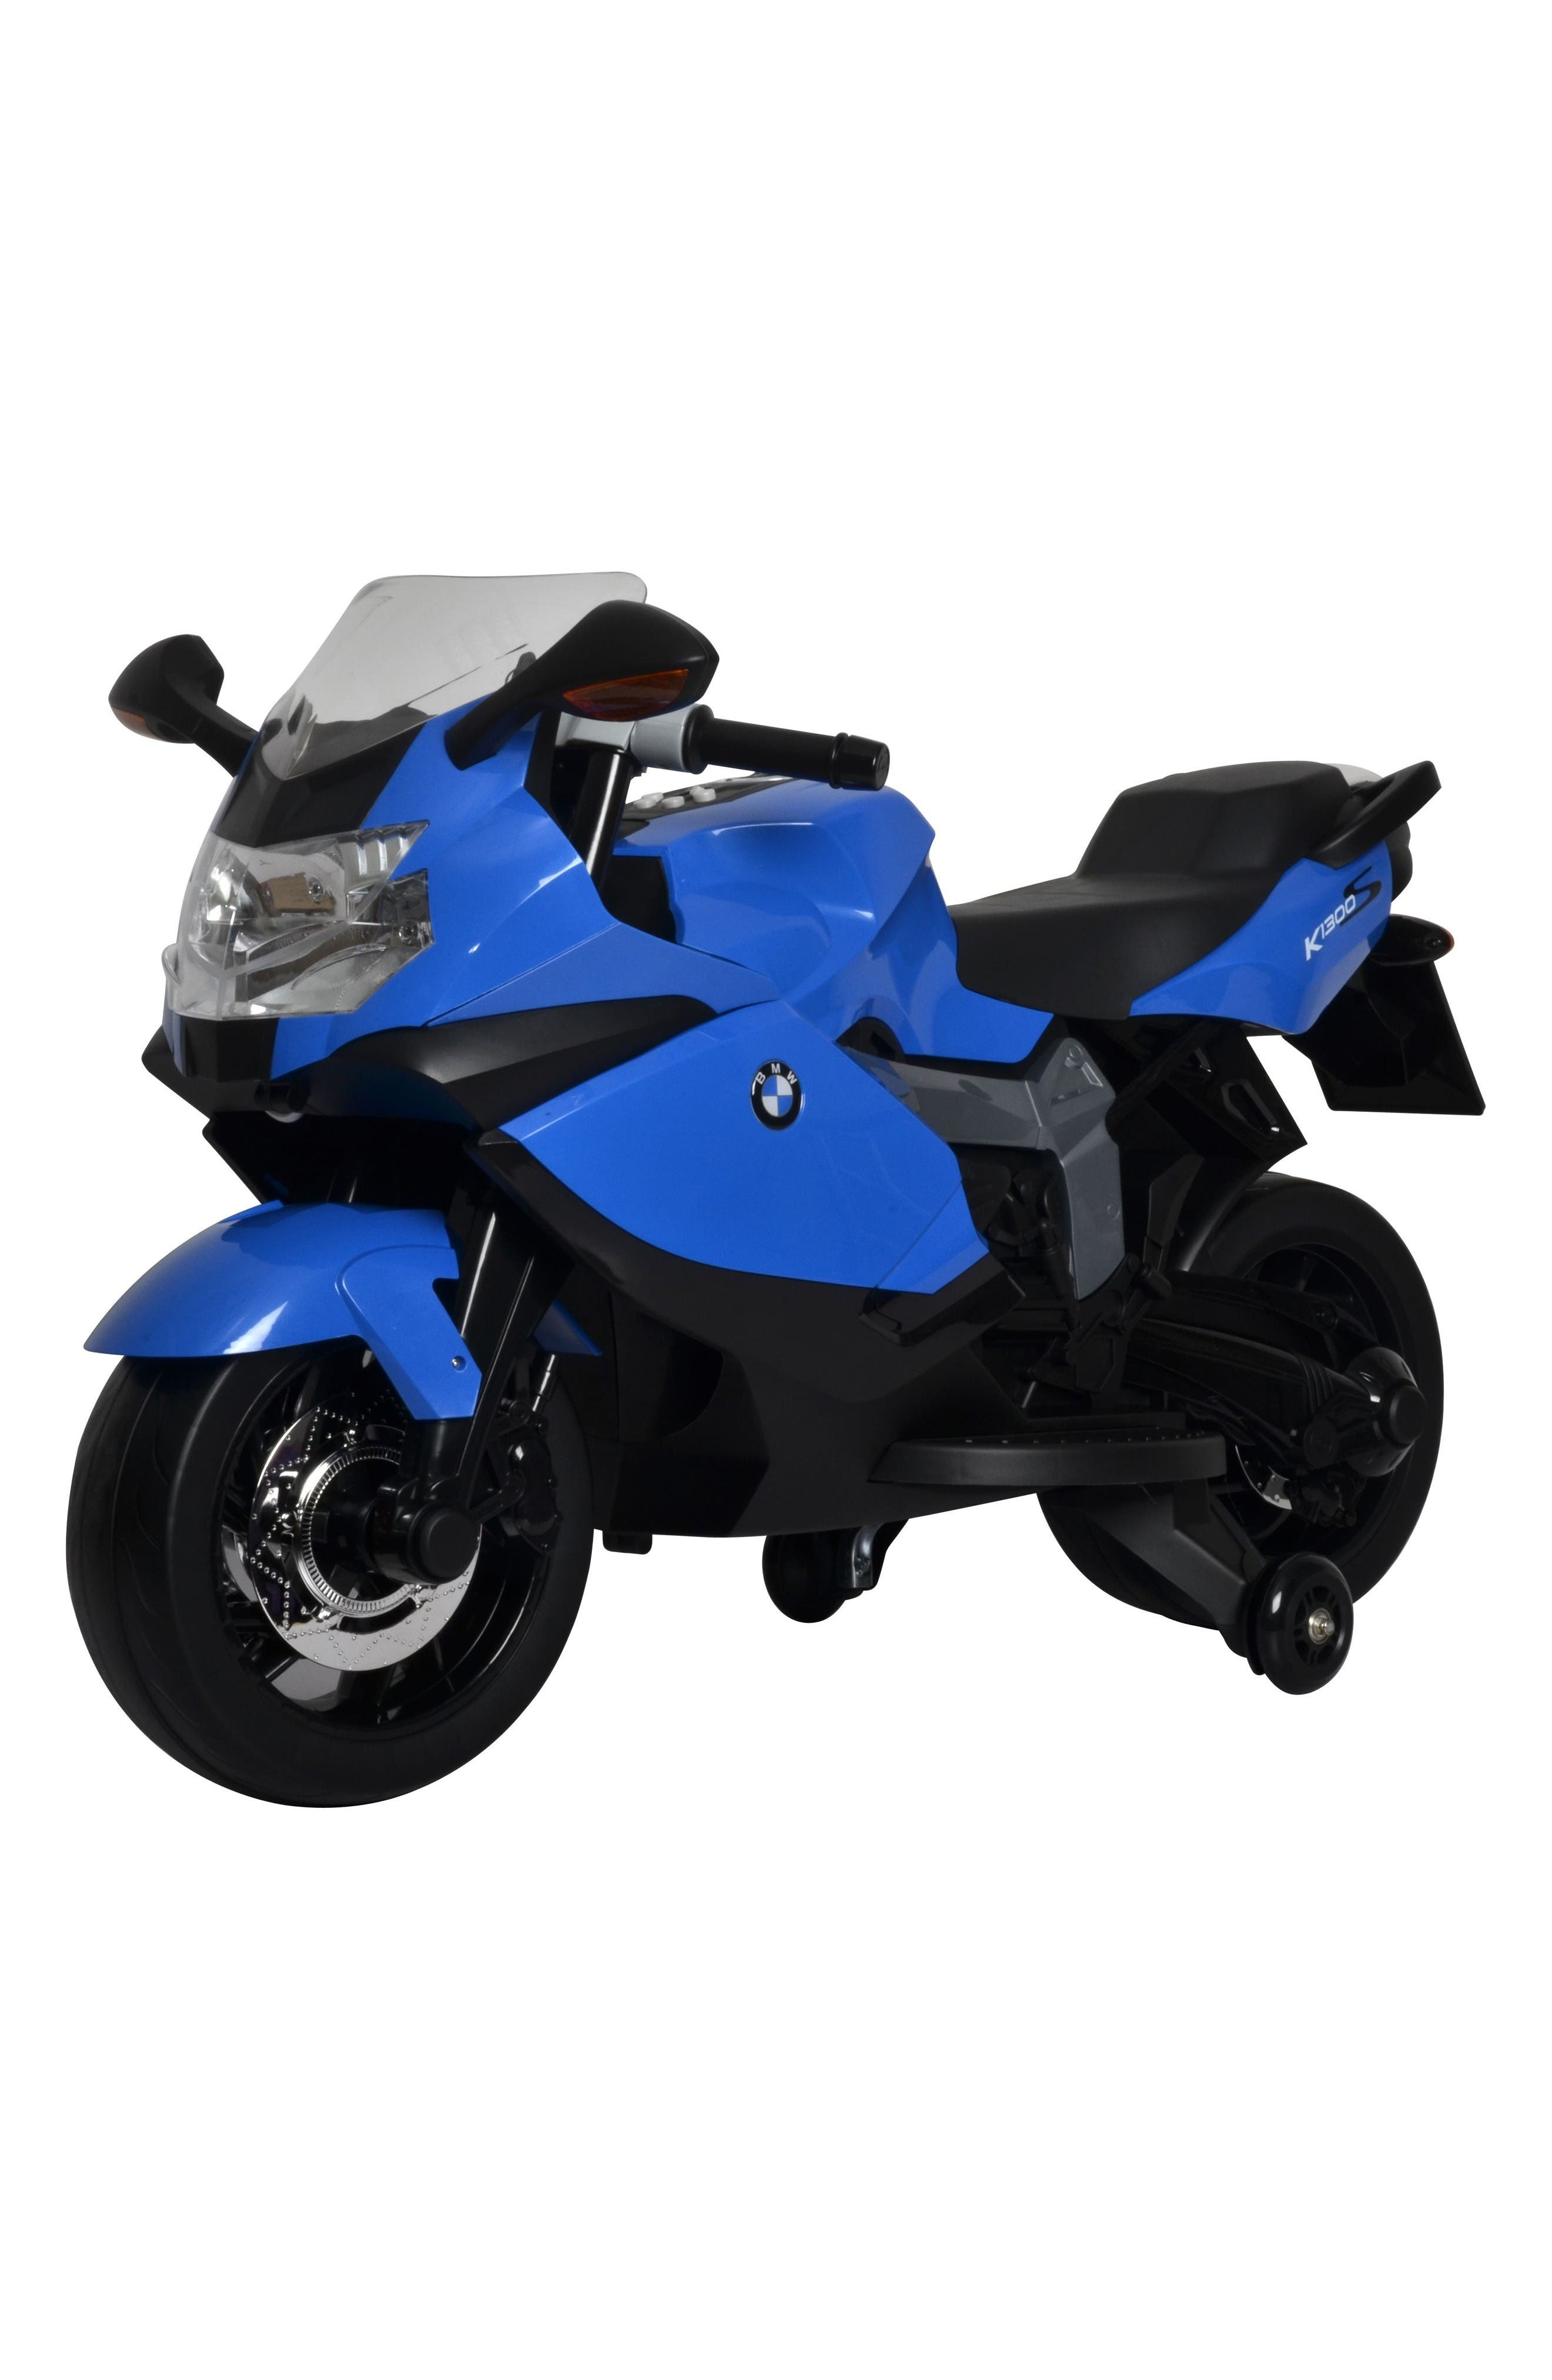 BMW Ride-On Toy Motorcycle,                             Main thumbnail 1, color,                             Blue